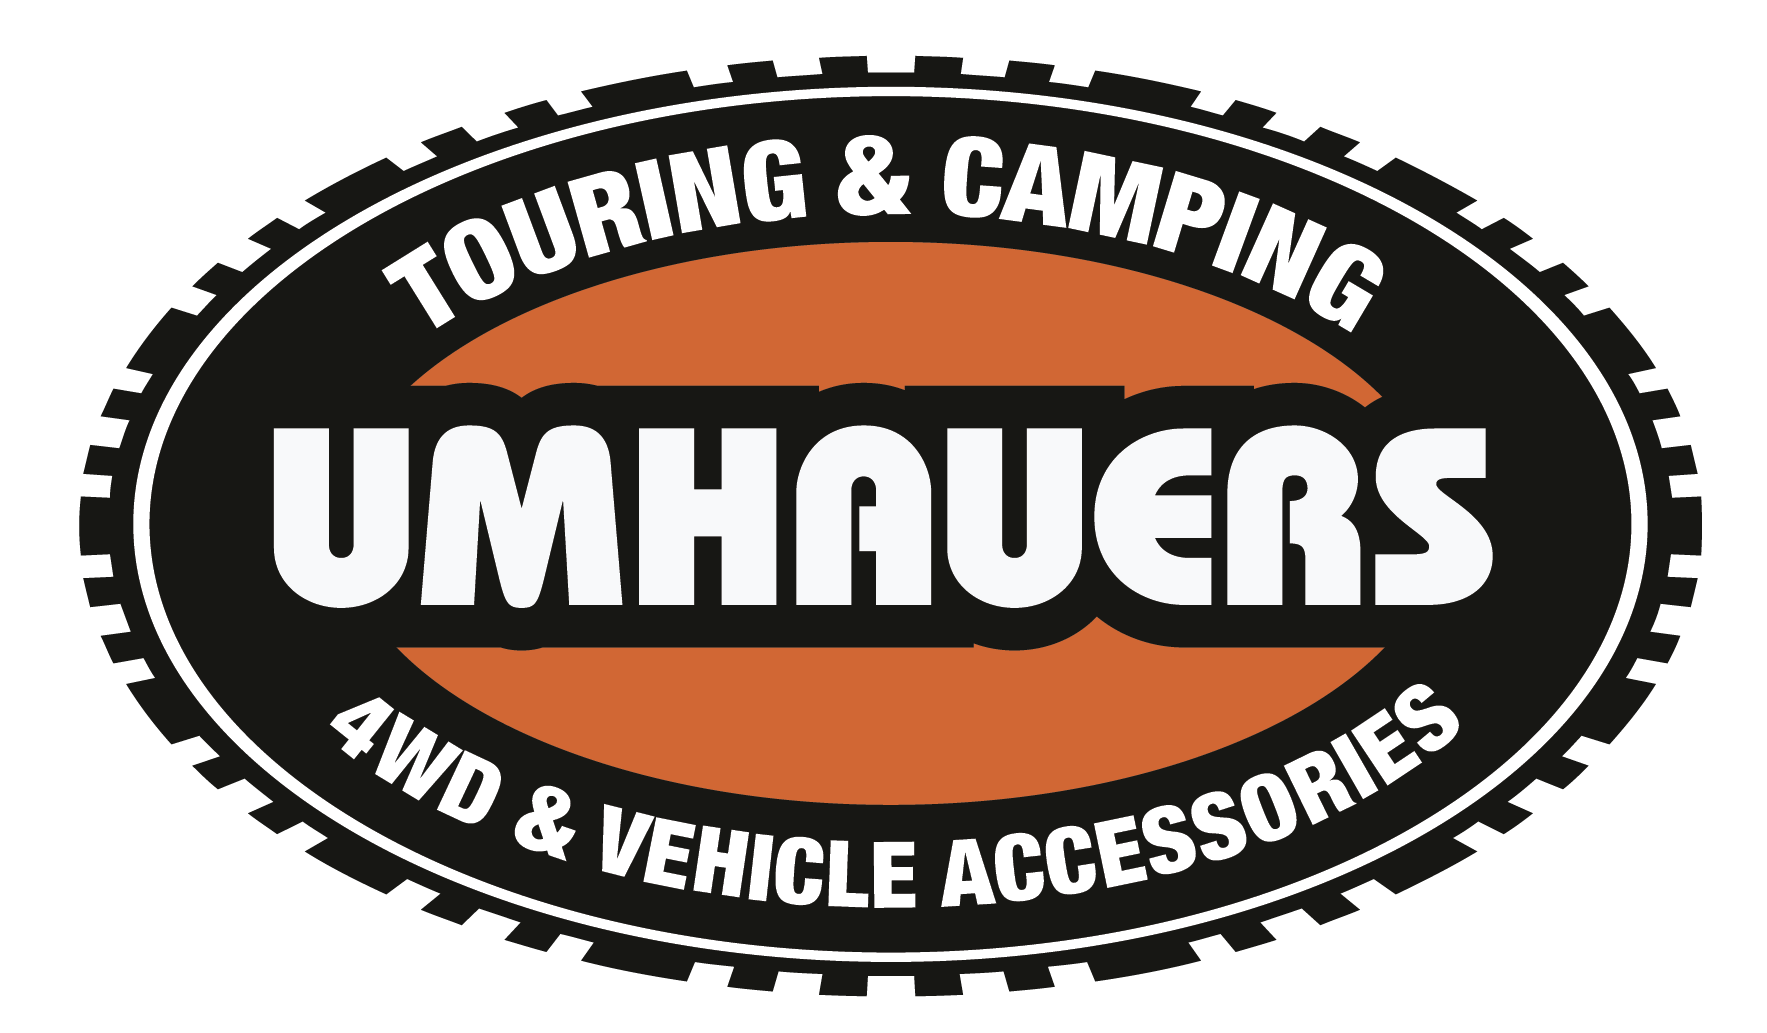 Umhauers Logo and Images